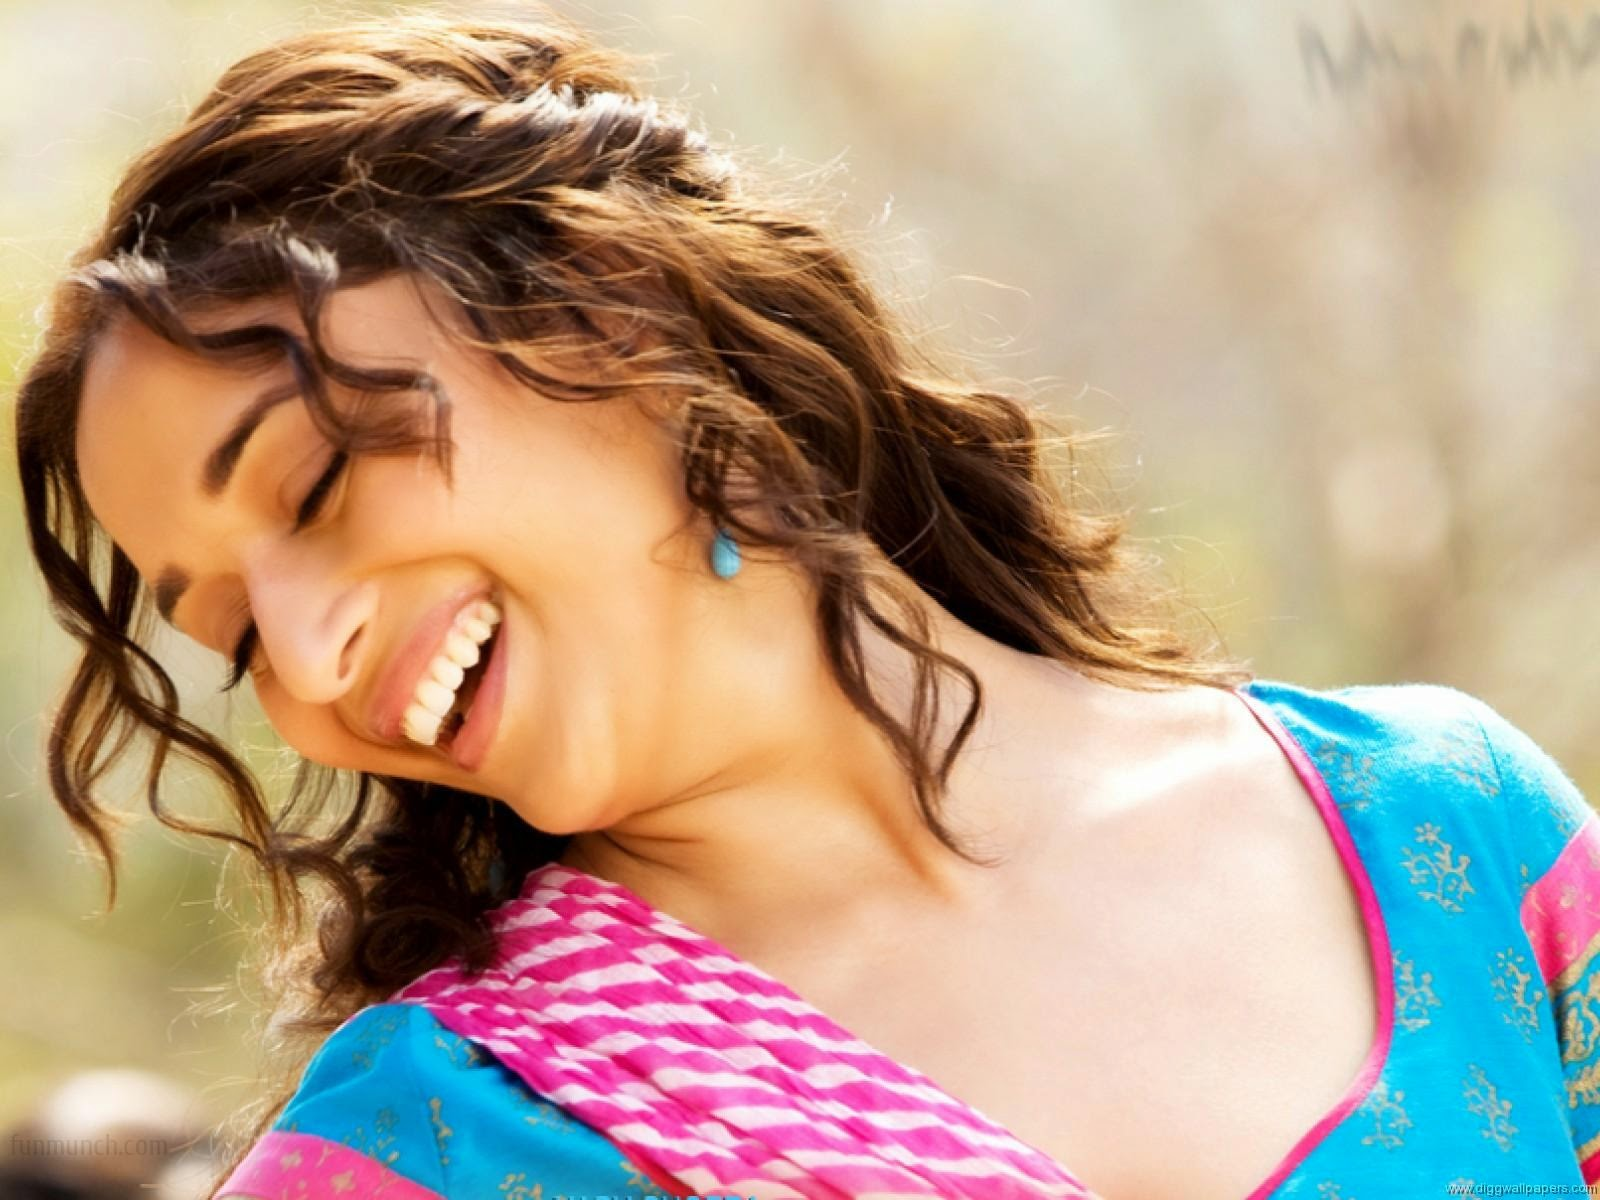 Wallpaper download hot - Madhuri Dixit Hot Smile Hd Wallpapers Free Download